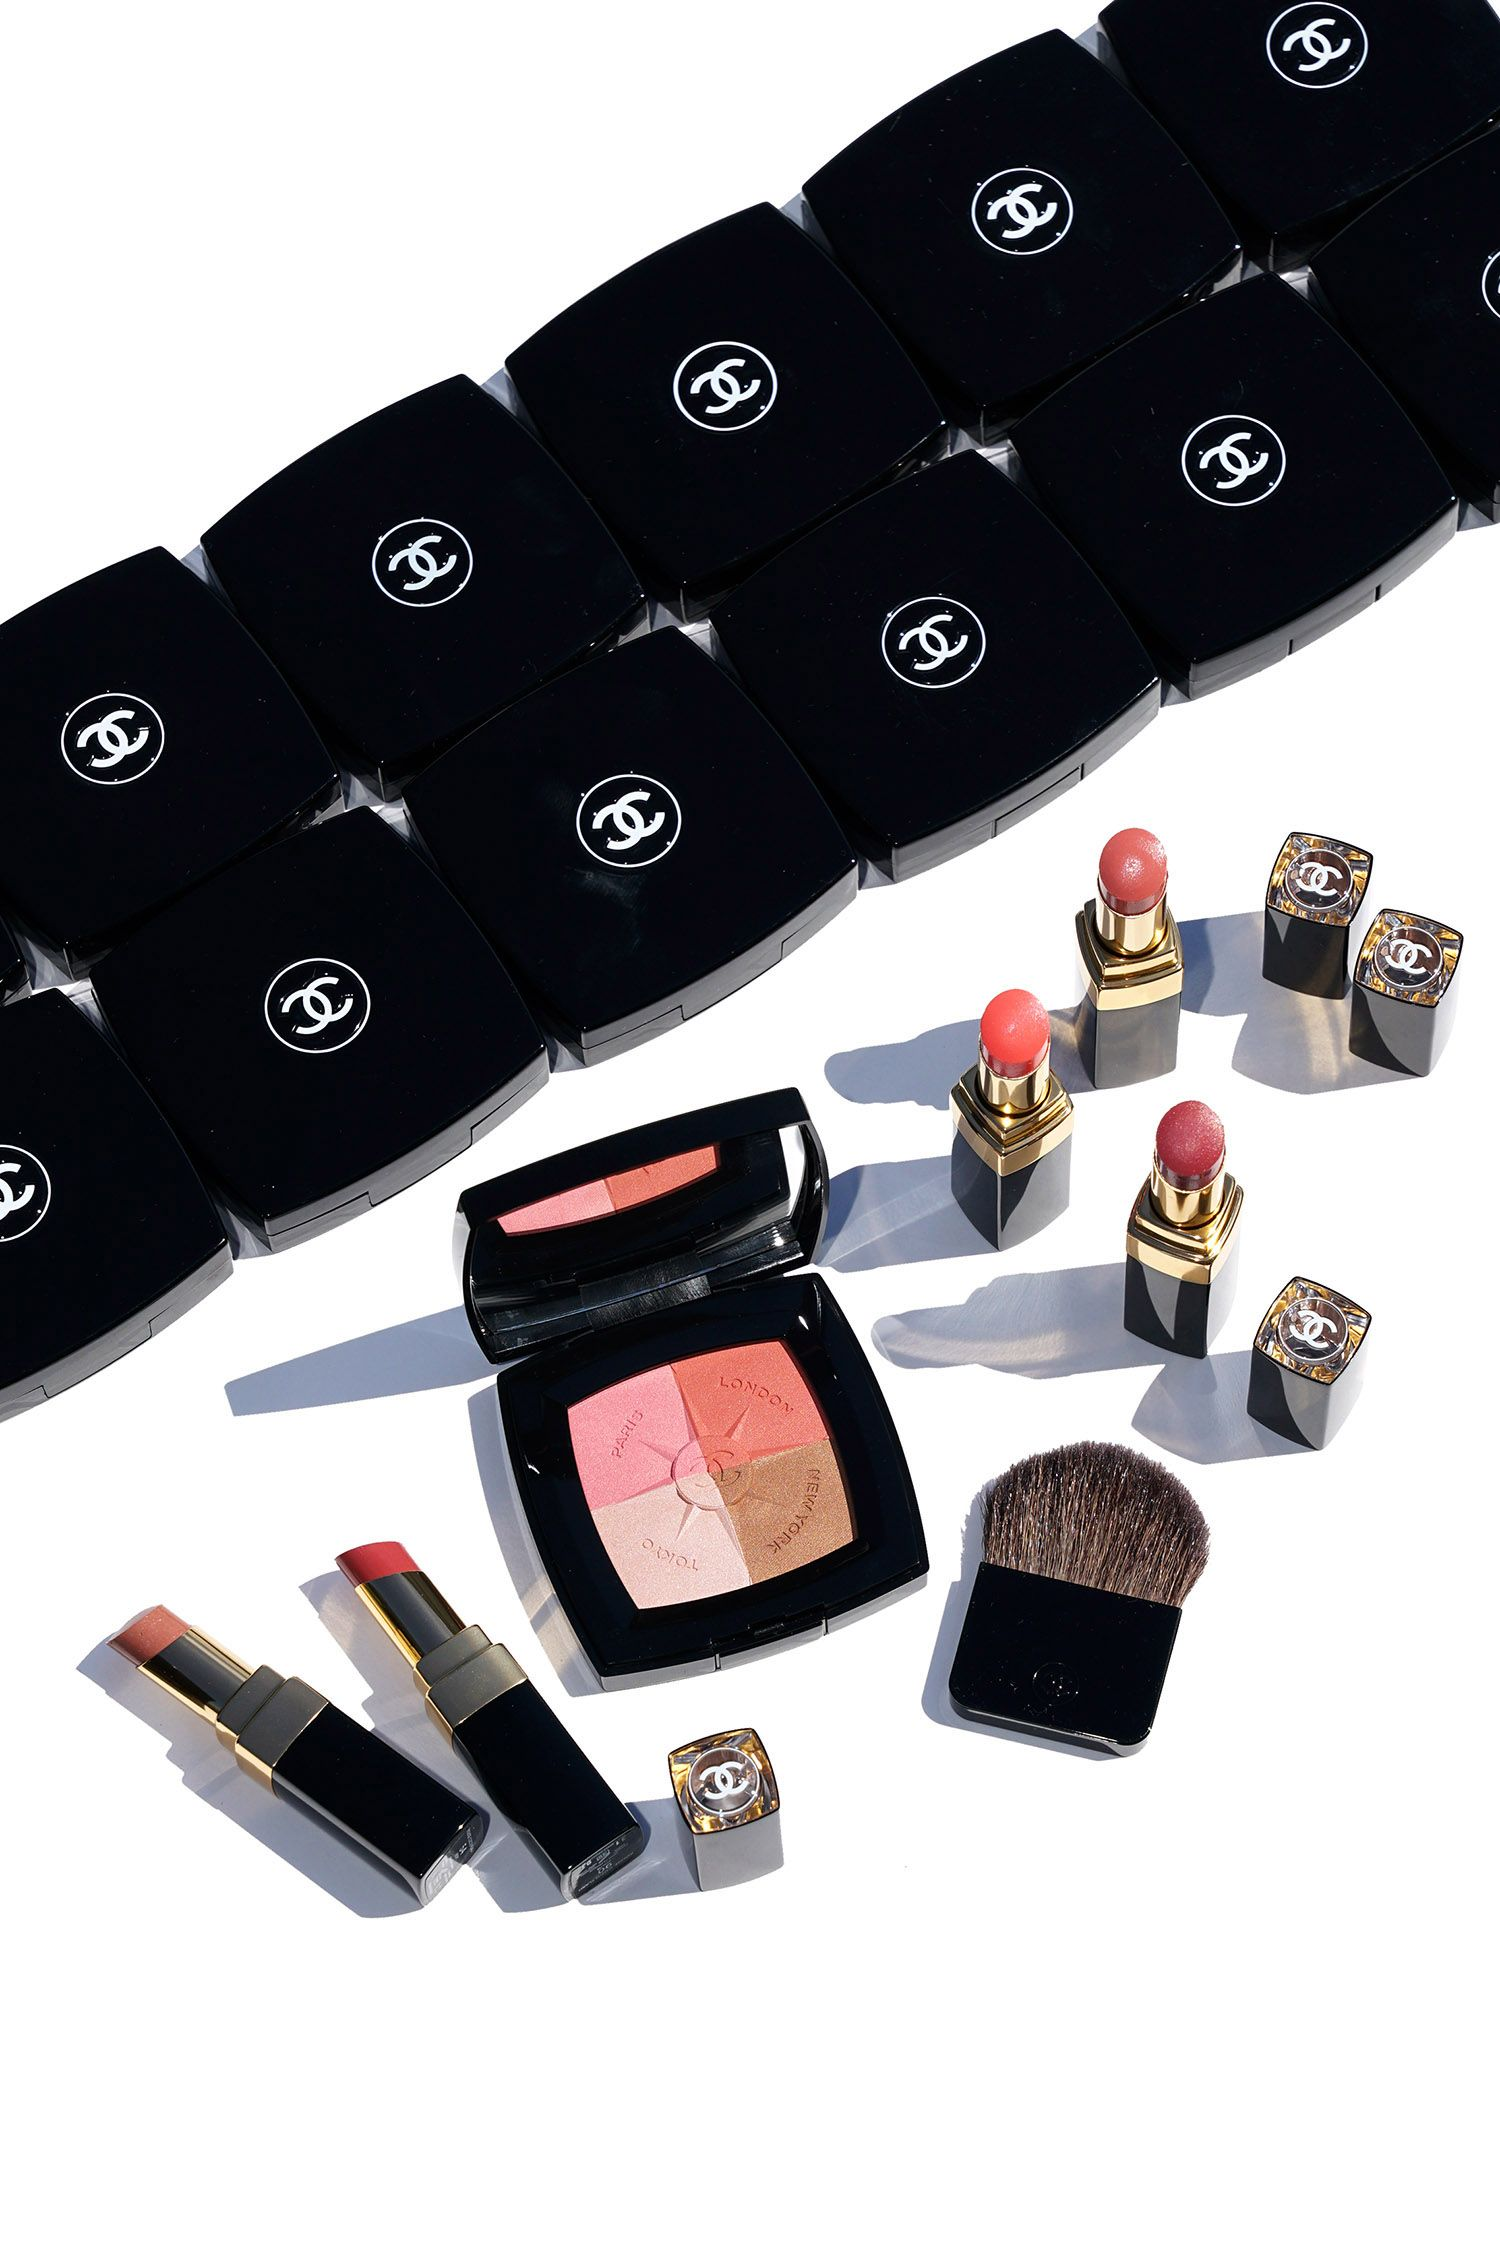 Chanel Rouge Coco Flash and Voyage de Chanel Travel